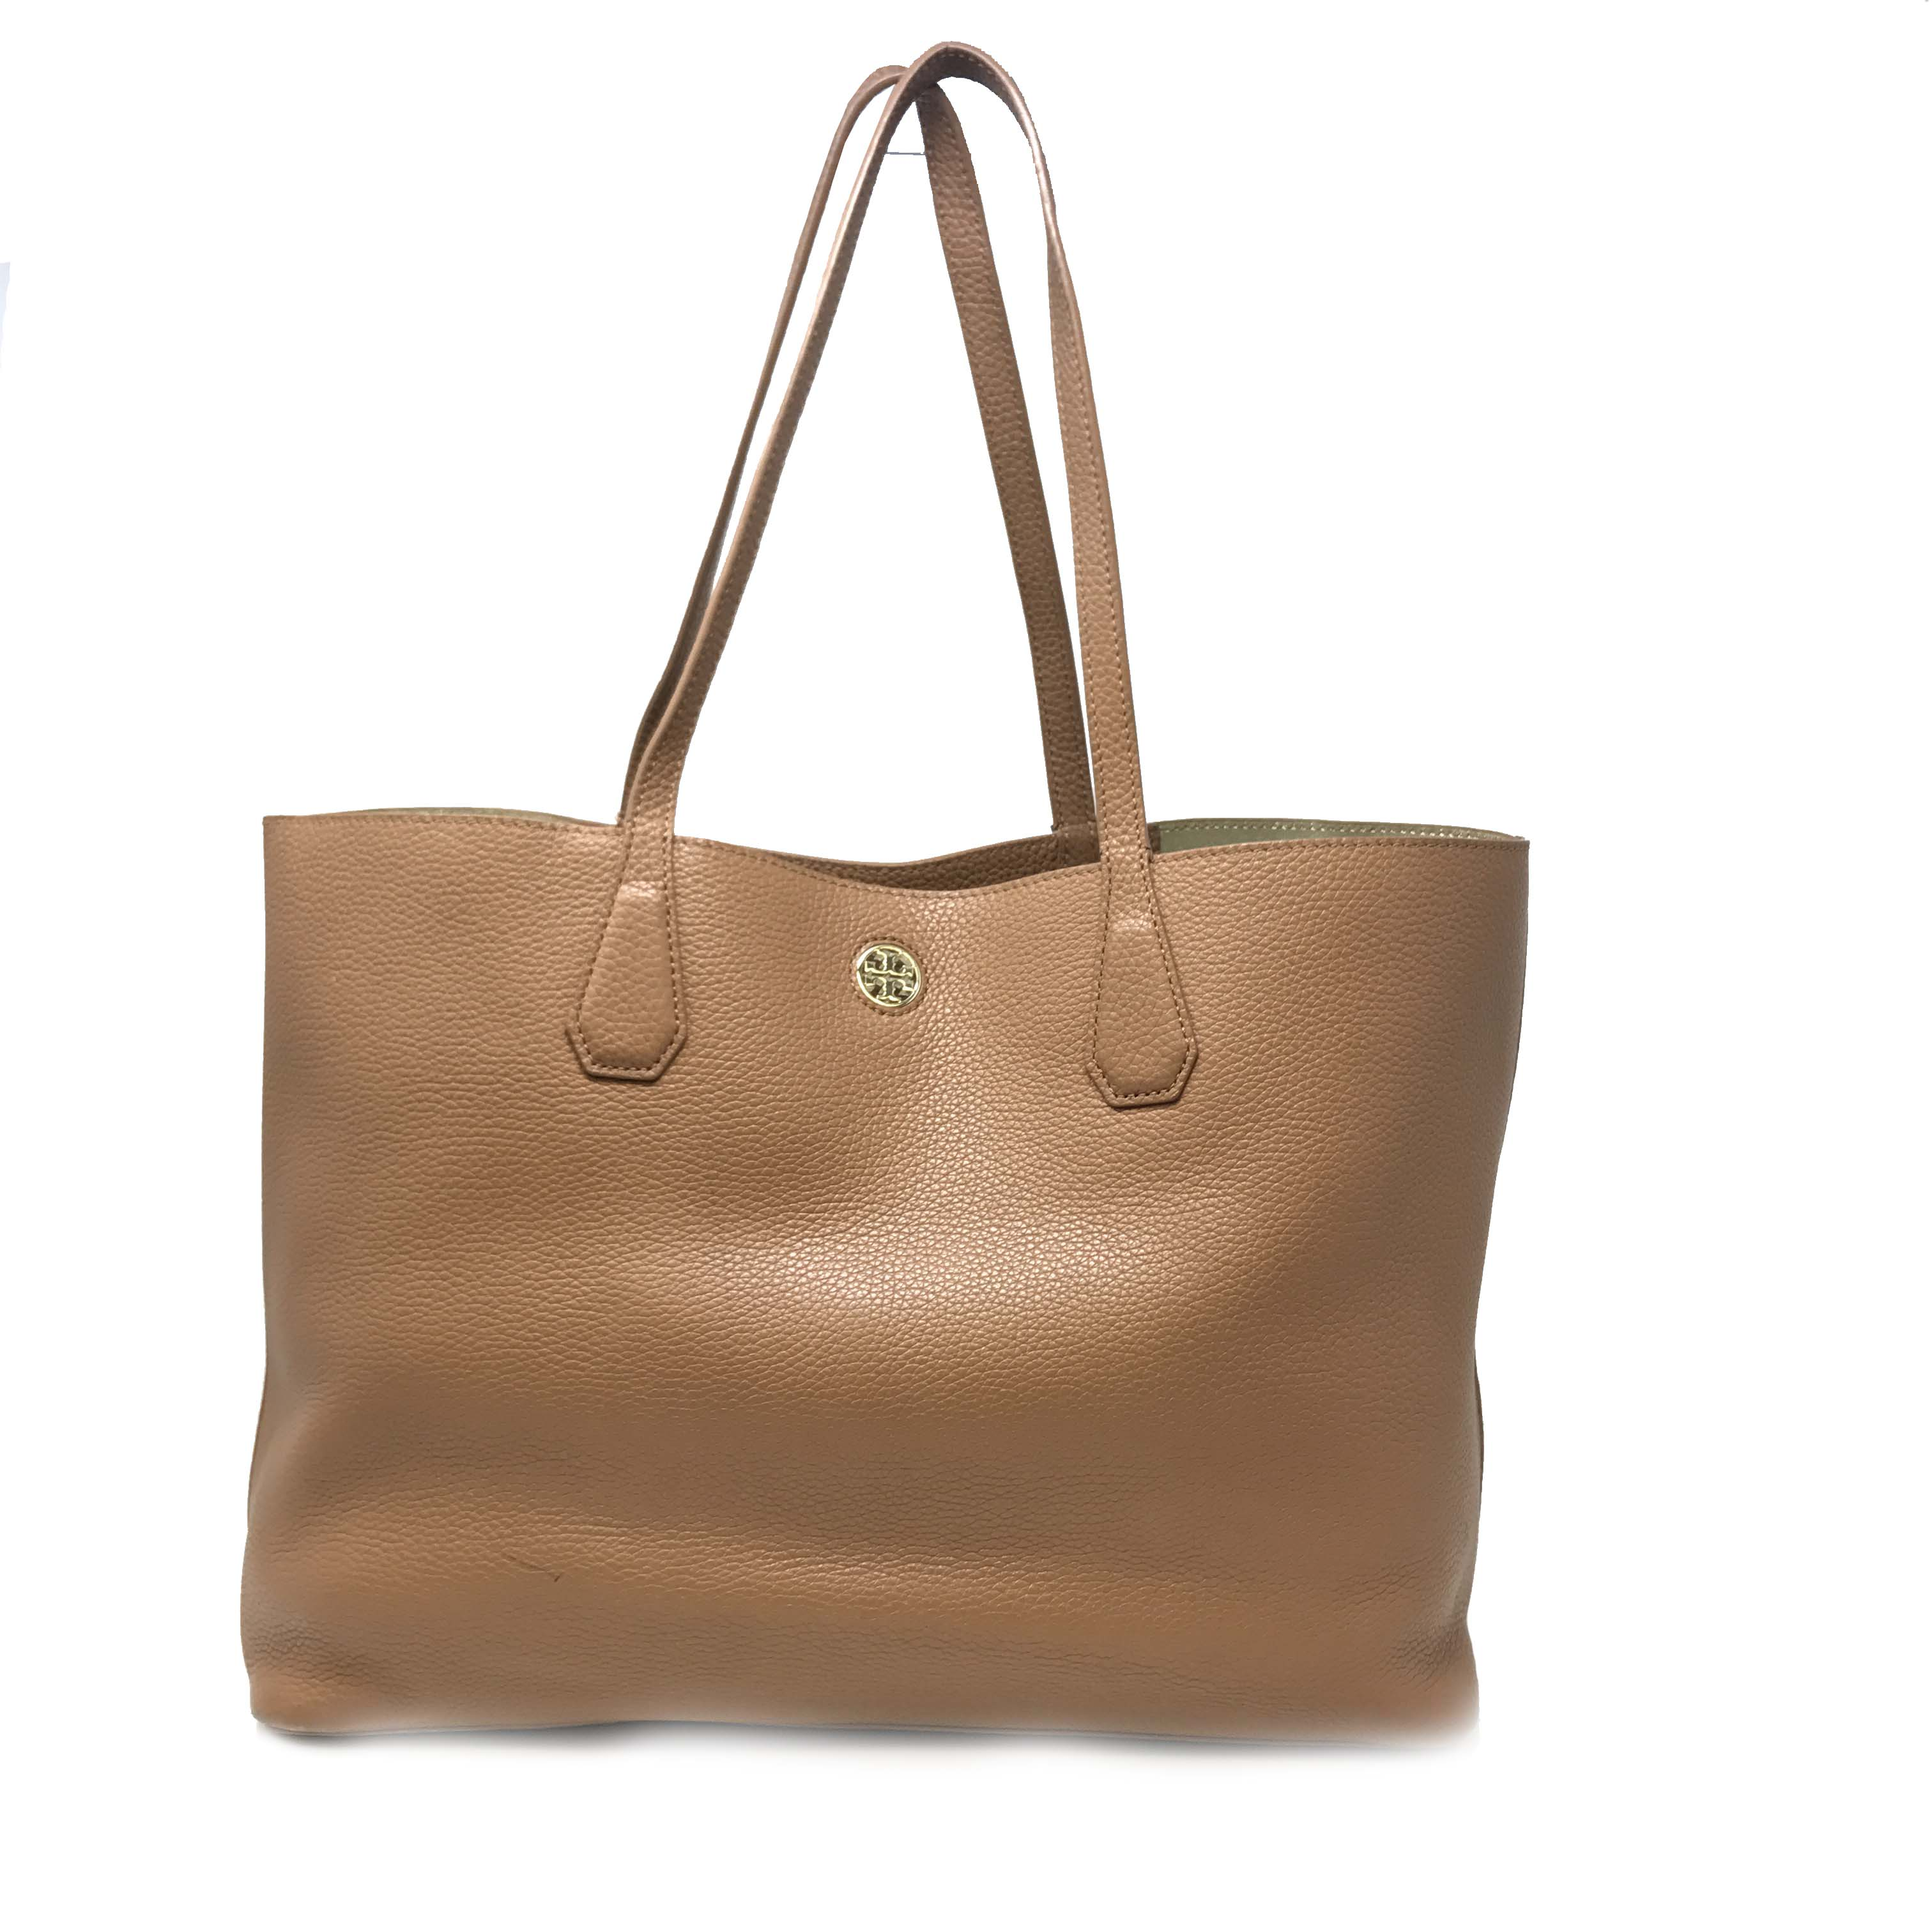 2e0e163c2311 Details about Tory Burch Bark Light Gold Pebbled Leather Perry Tote Women s  Bag